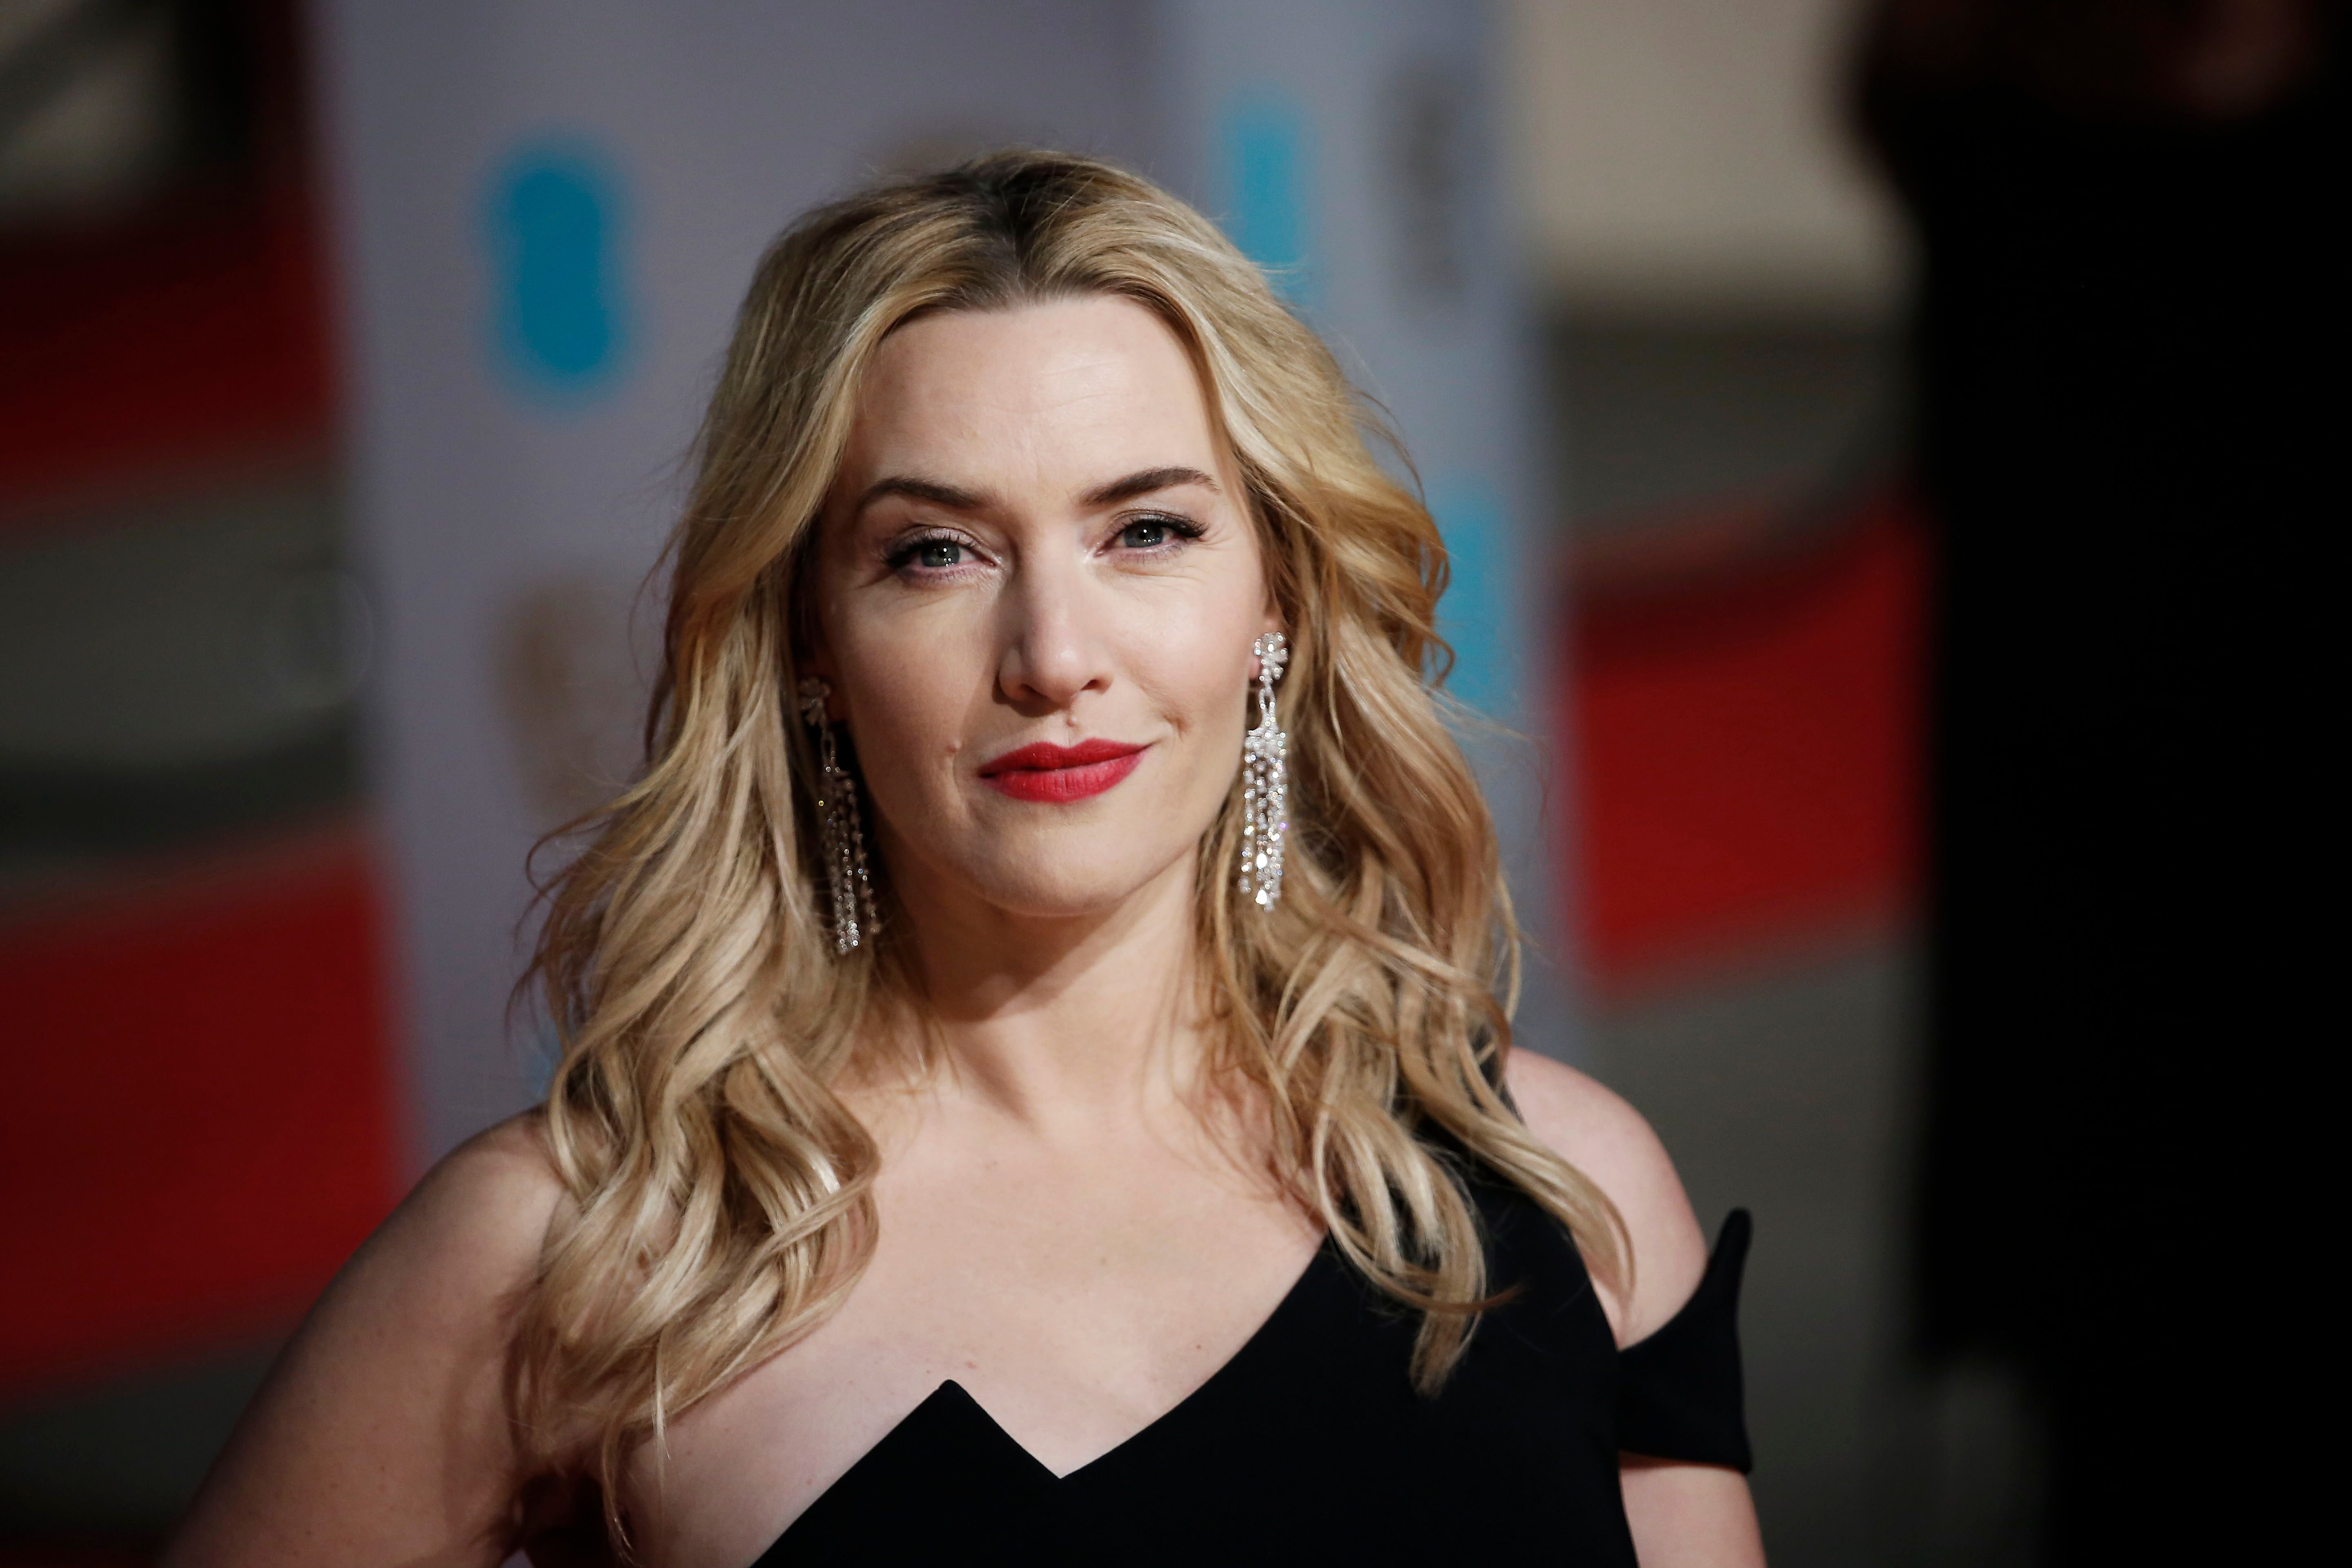 Kate Winslet at the EE British Academy Film Awards in 2016 in London, England | Source: Getty Images